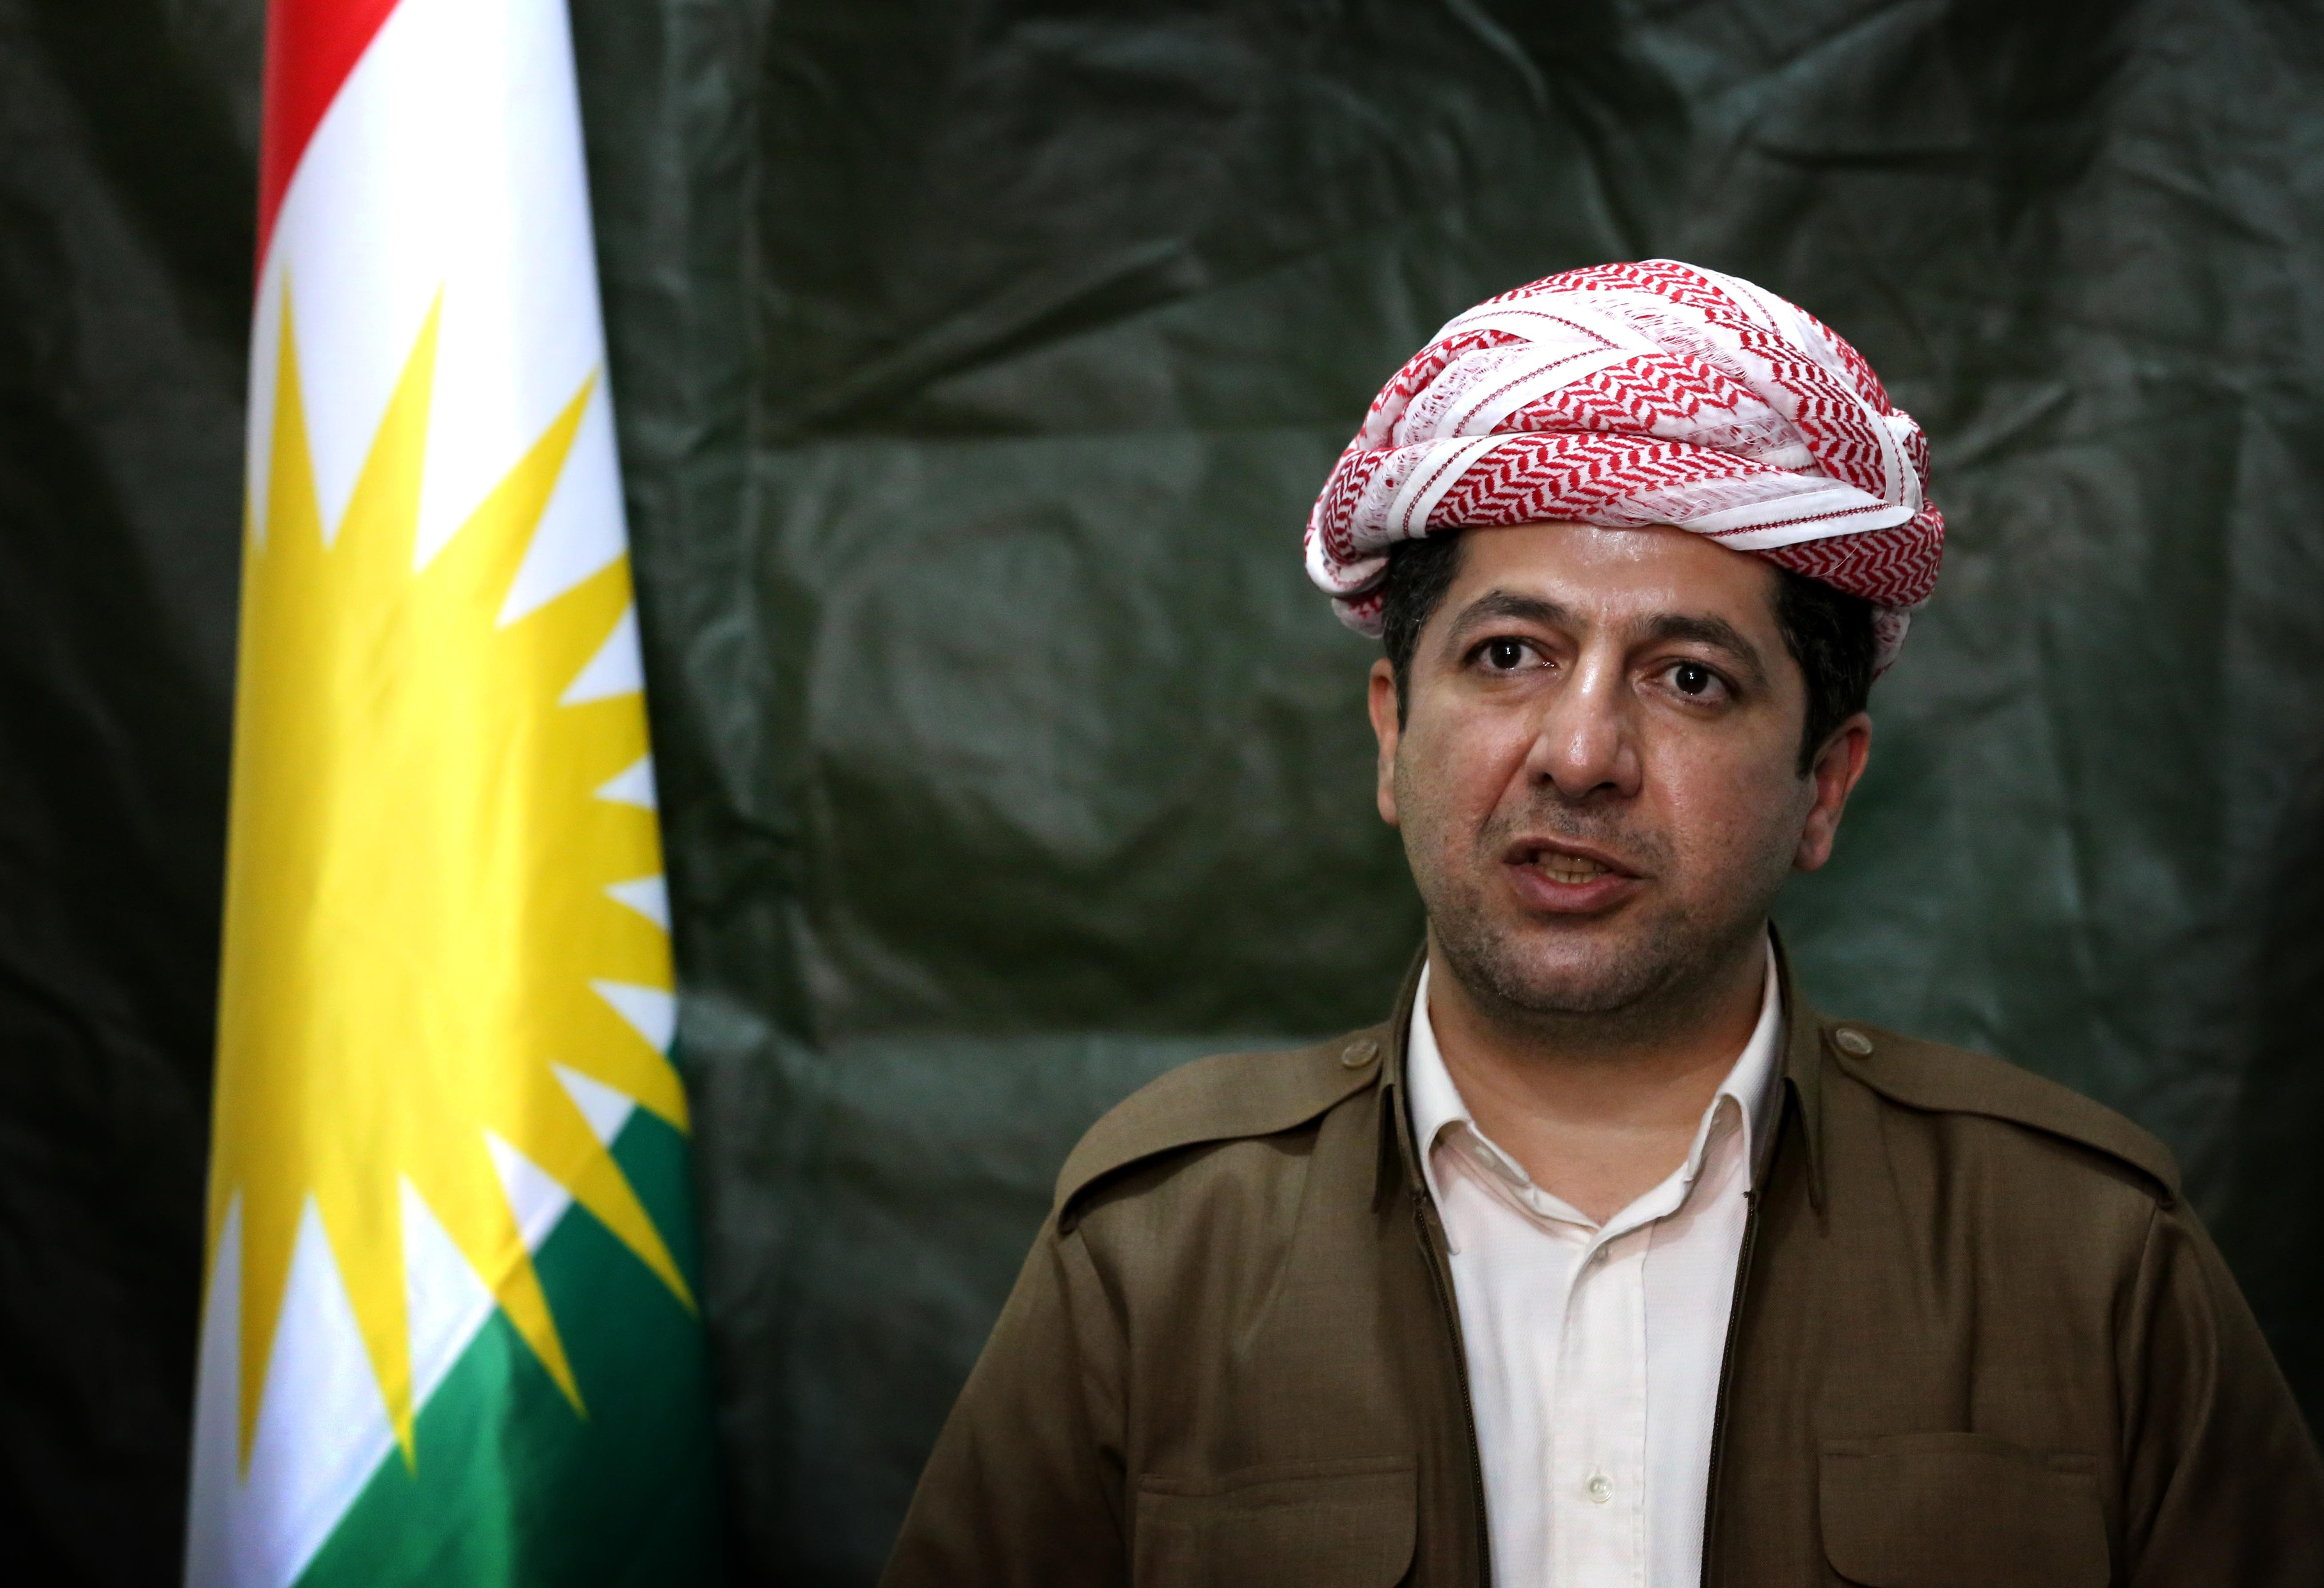 Masrour Barzani, chancellor of the Kurdistan Regional Security Council, speaks during a press conference in the northern Iraqi city of Dohuk December 18, 2014.